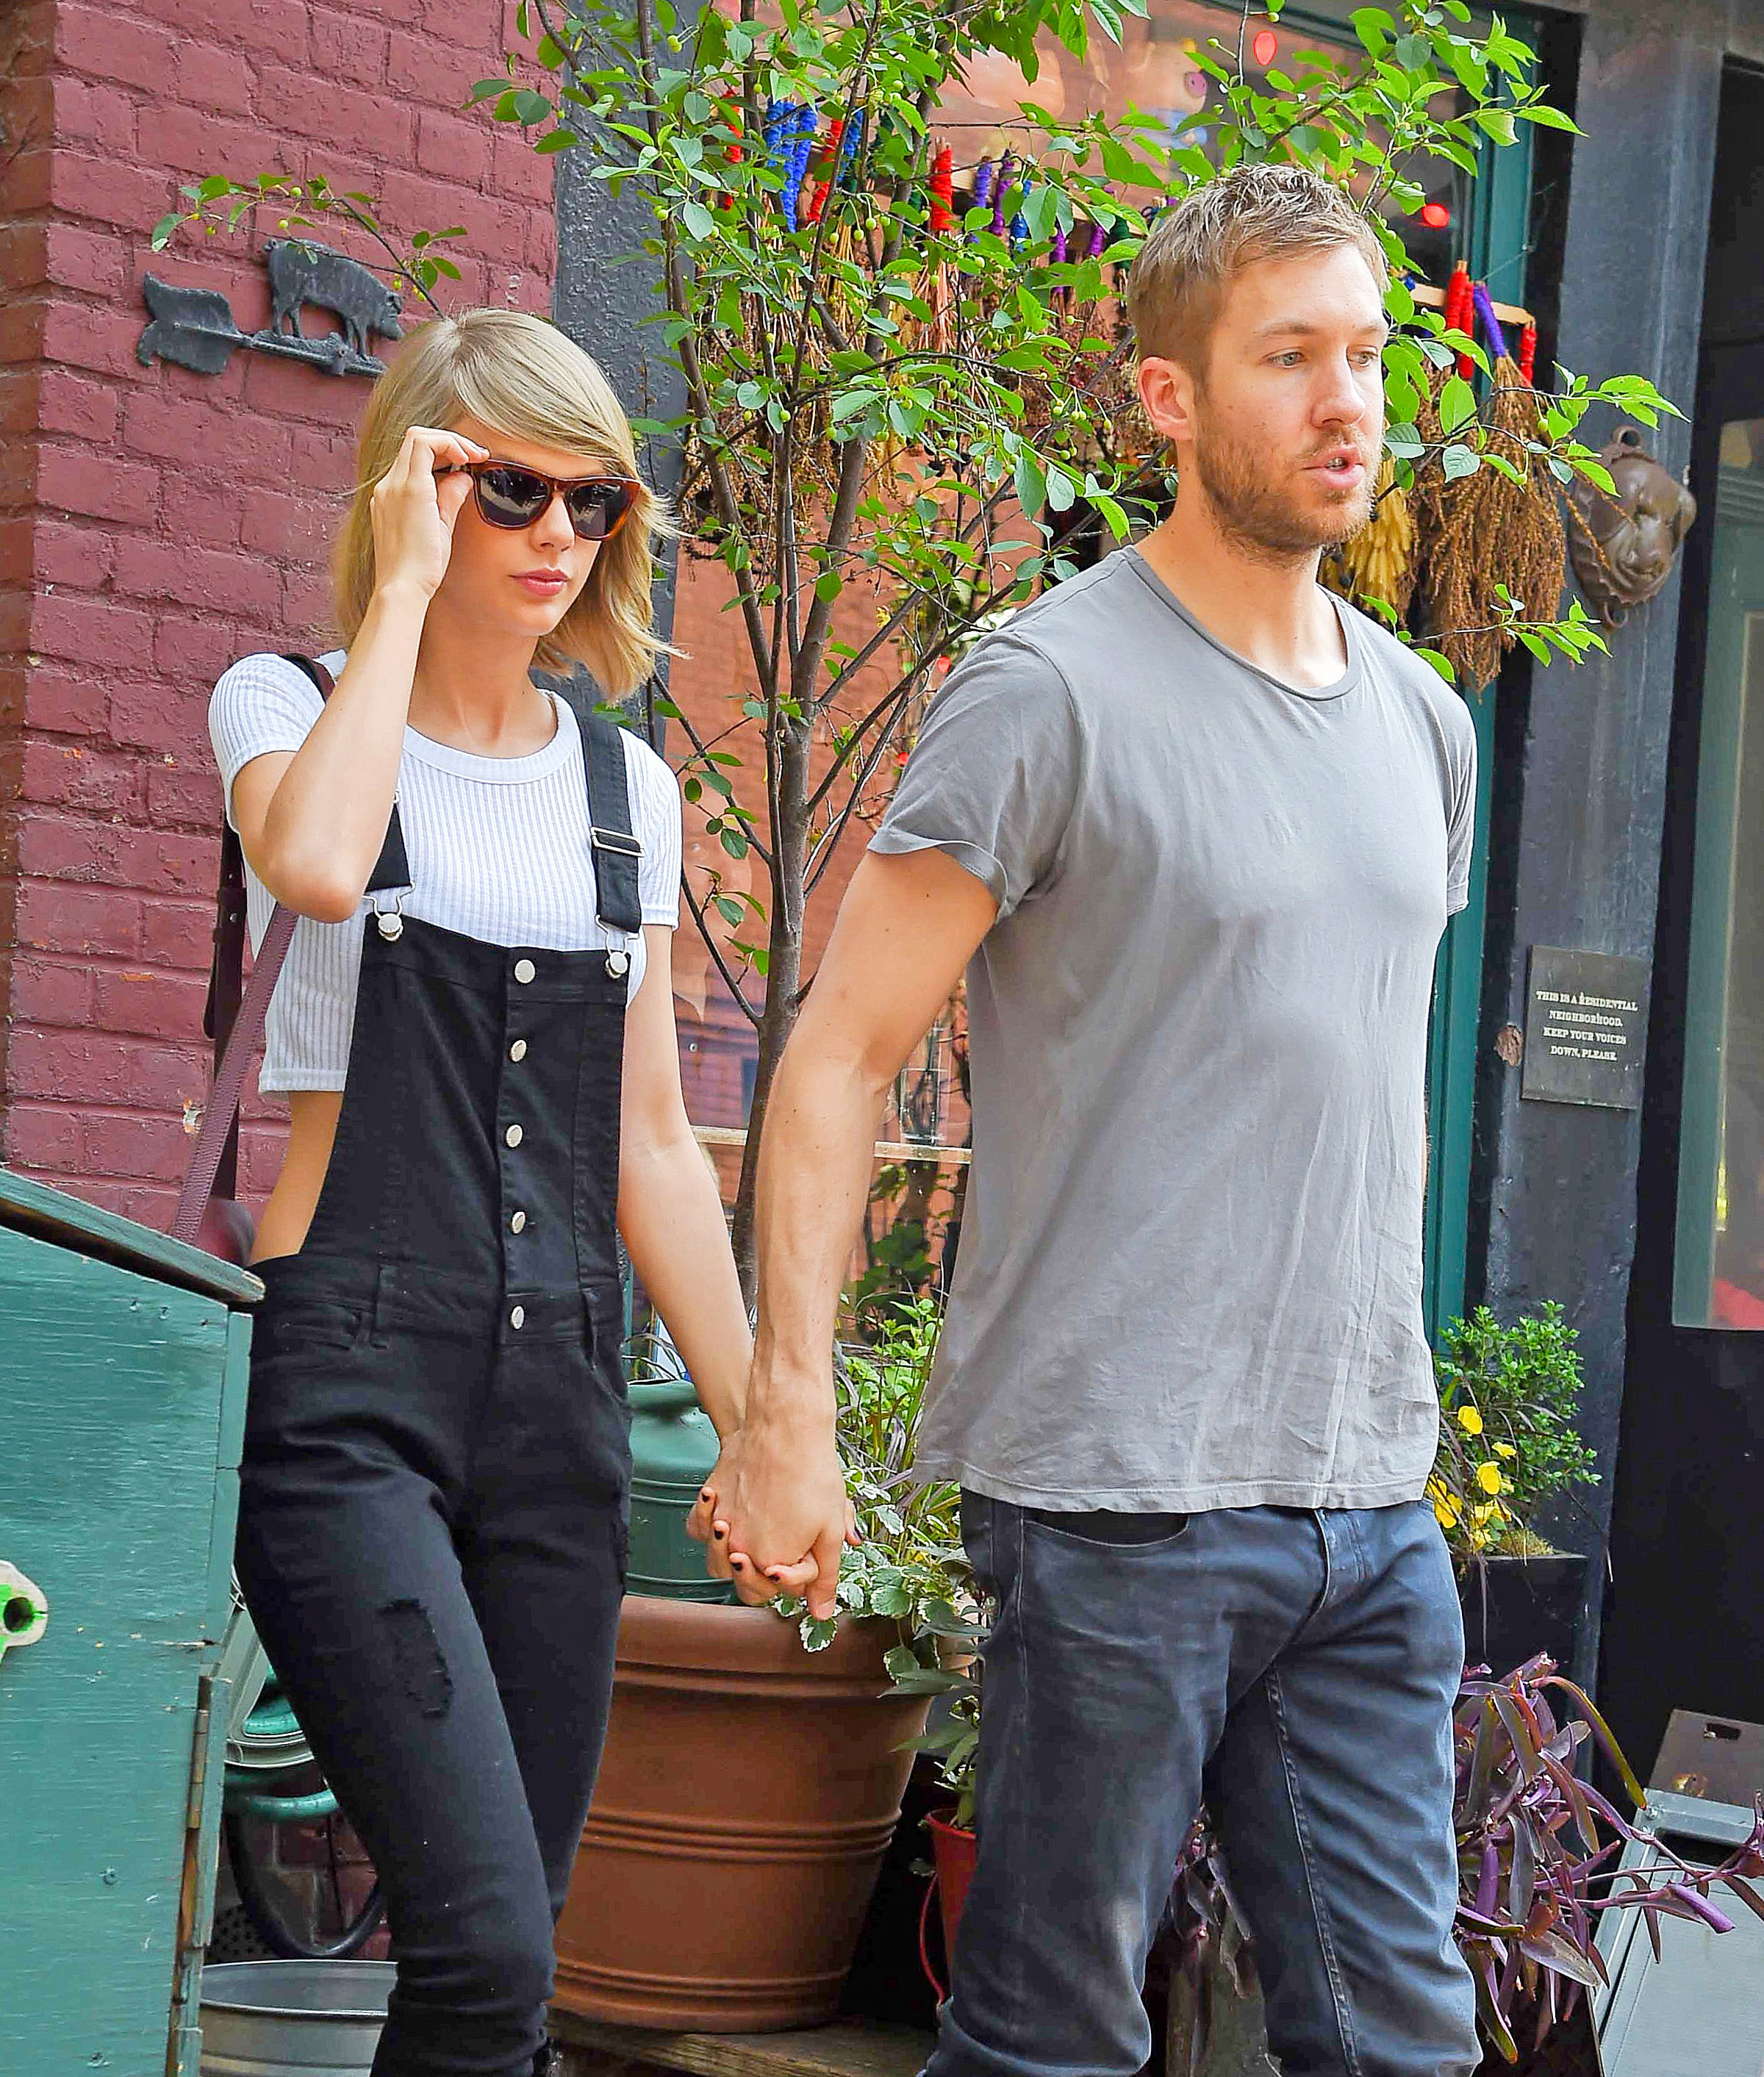 Calvin and T-Swift broke up at the start of the summer (Photo credit: Splash News)